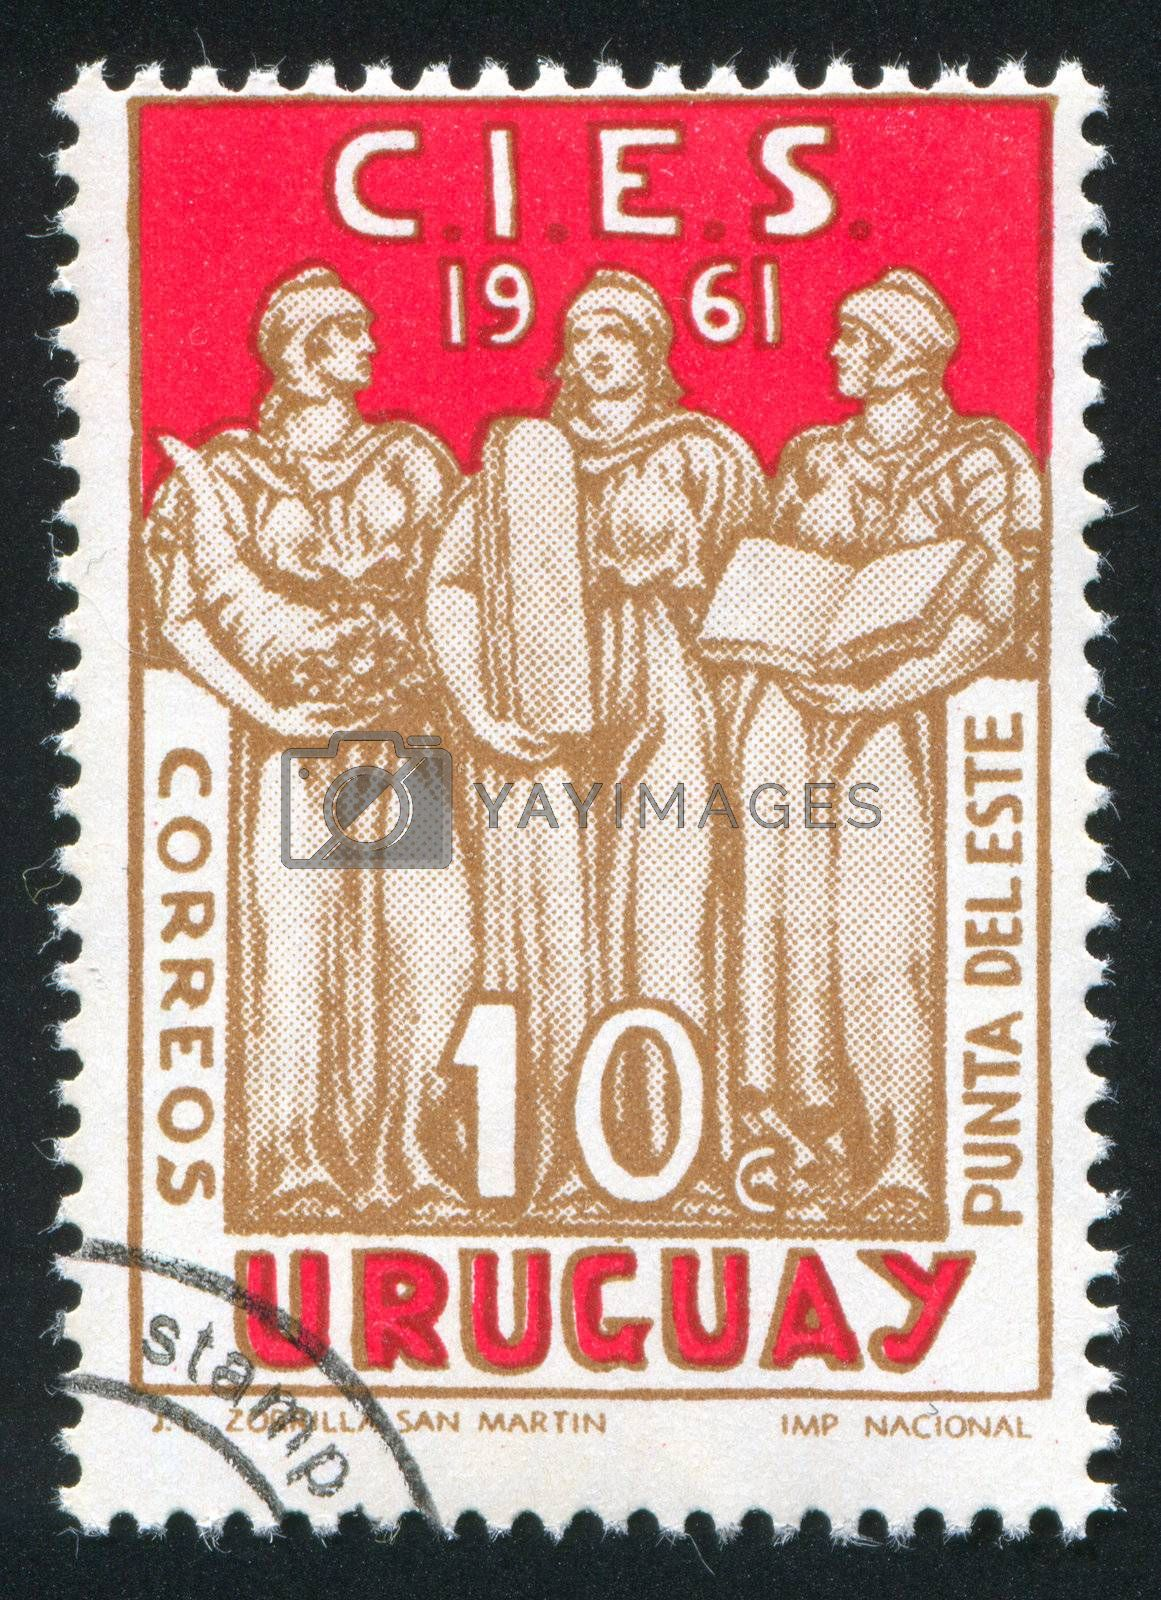 URUGUAY - CIRCA 1961: stamp printed by Uruguay, shows Welfare, Justice and Education, circa 1961